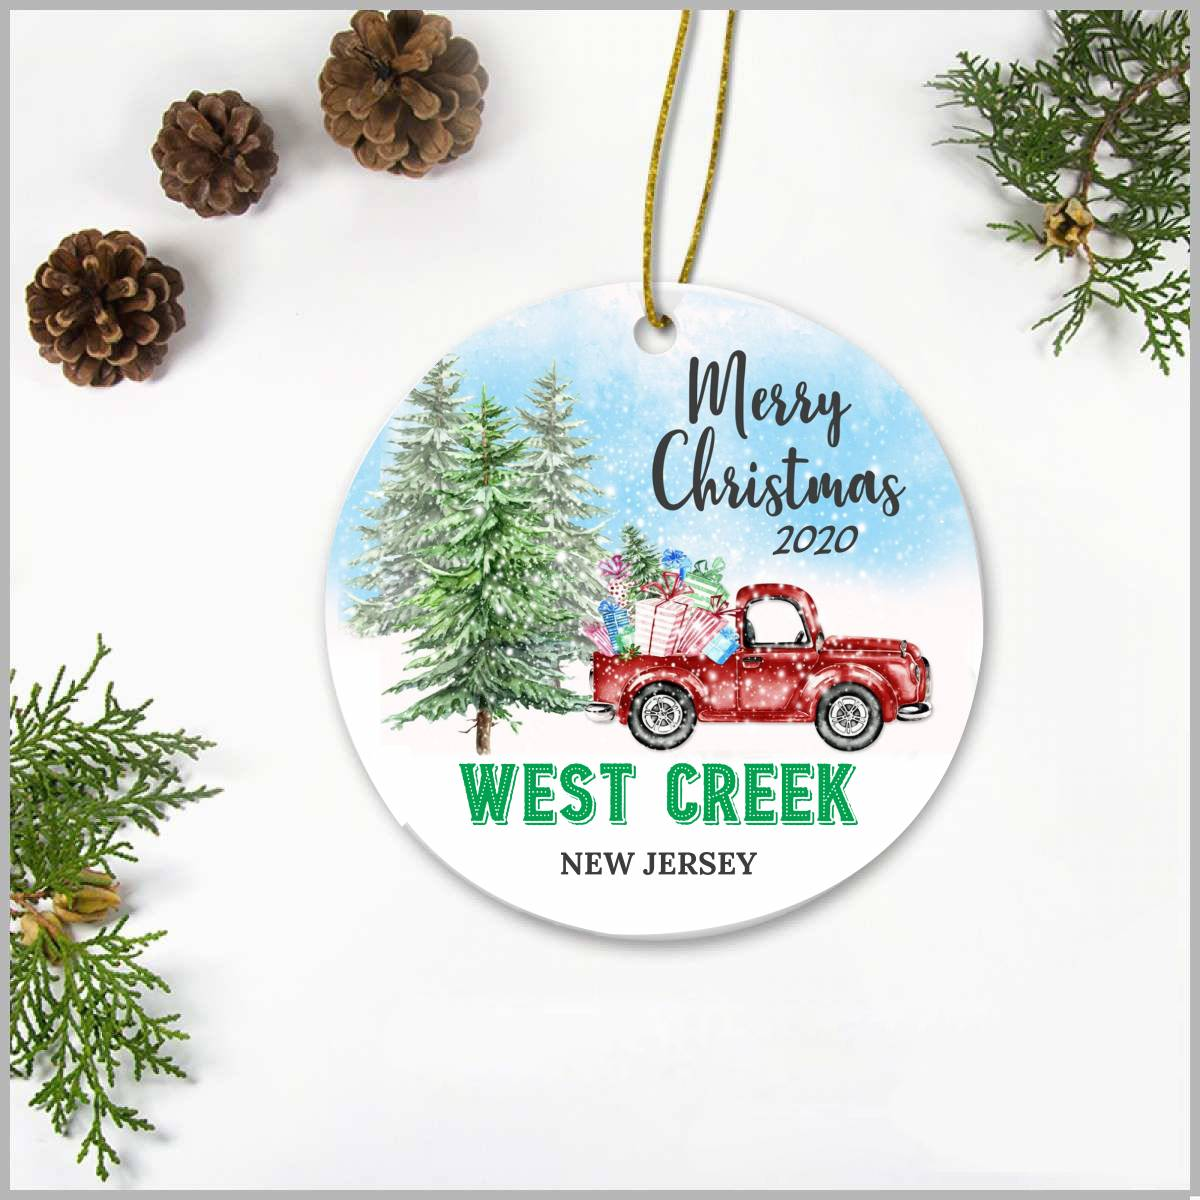 New Jersey Christmas Decorations 2020 Customize Christmas Ornament 2020 West Creek New Jersey Christmas